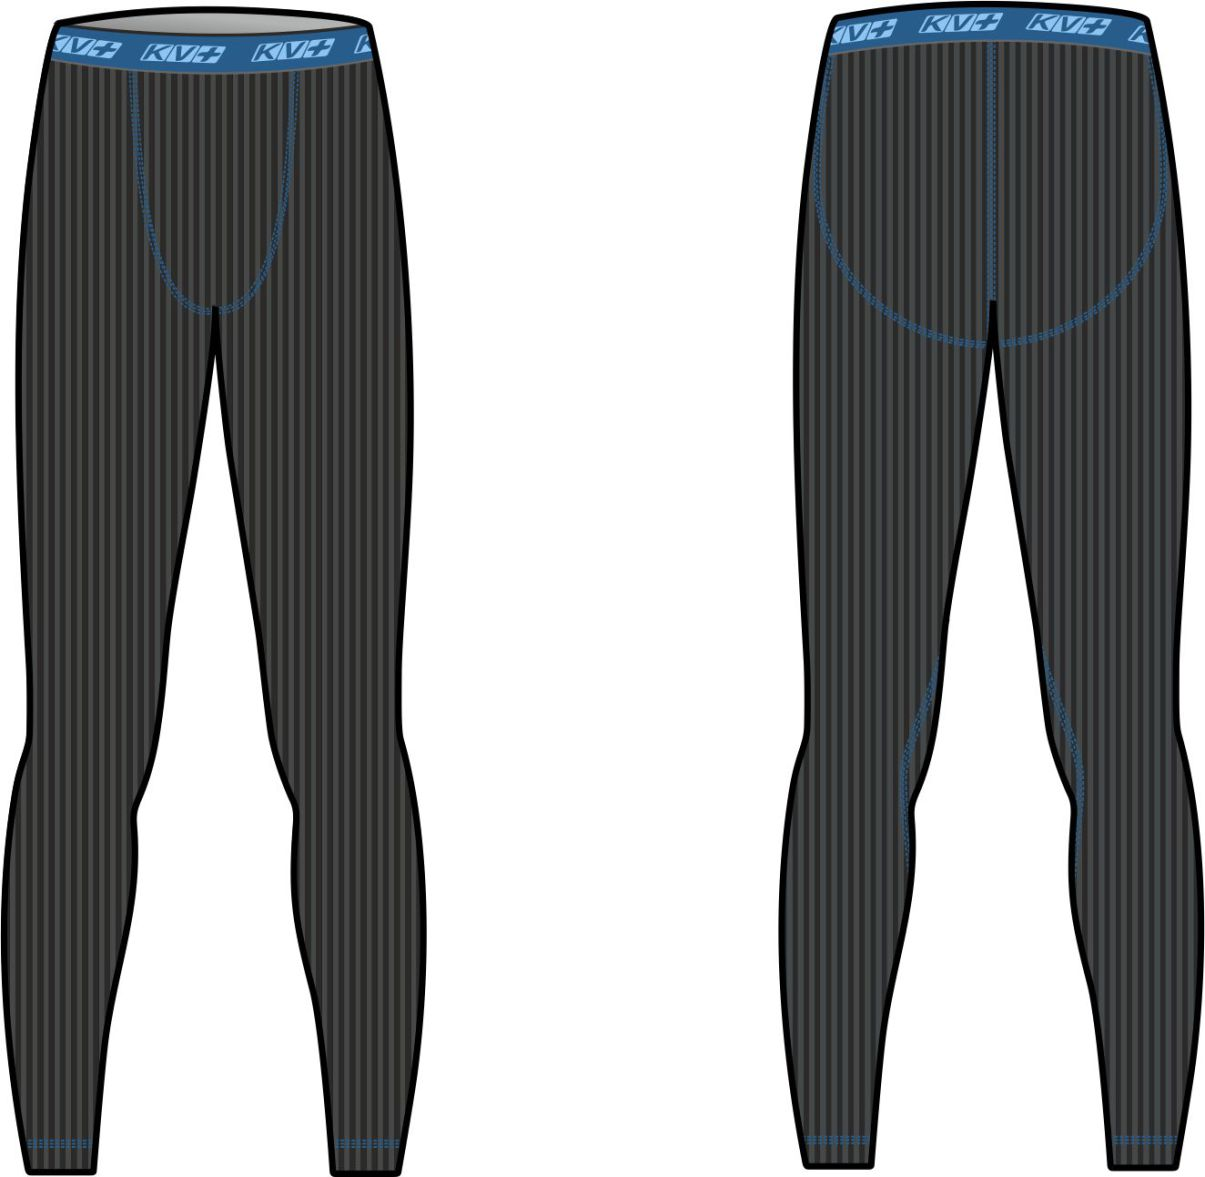 KV+ TENERO MAN PANTS Black/Petrol 9U134-1